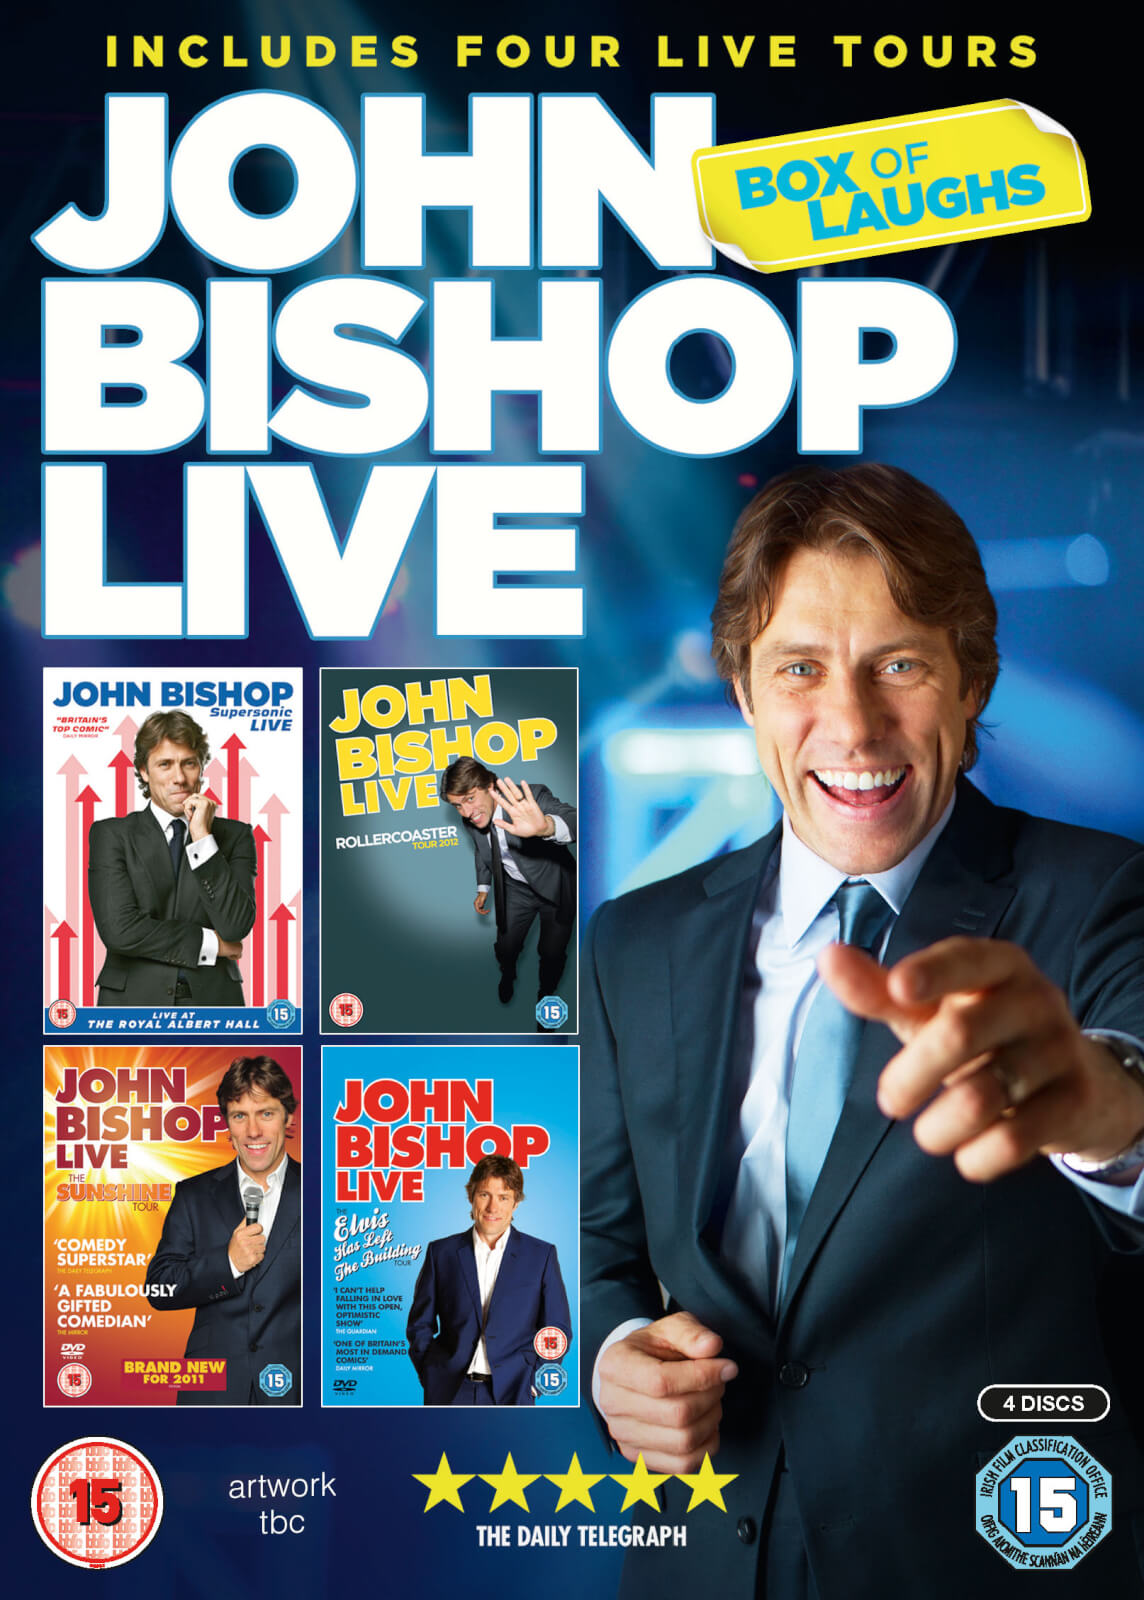 John Bishop Live: Box Of Laughs